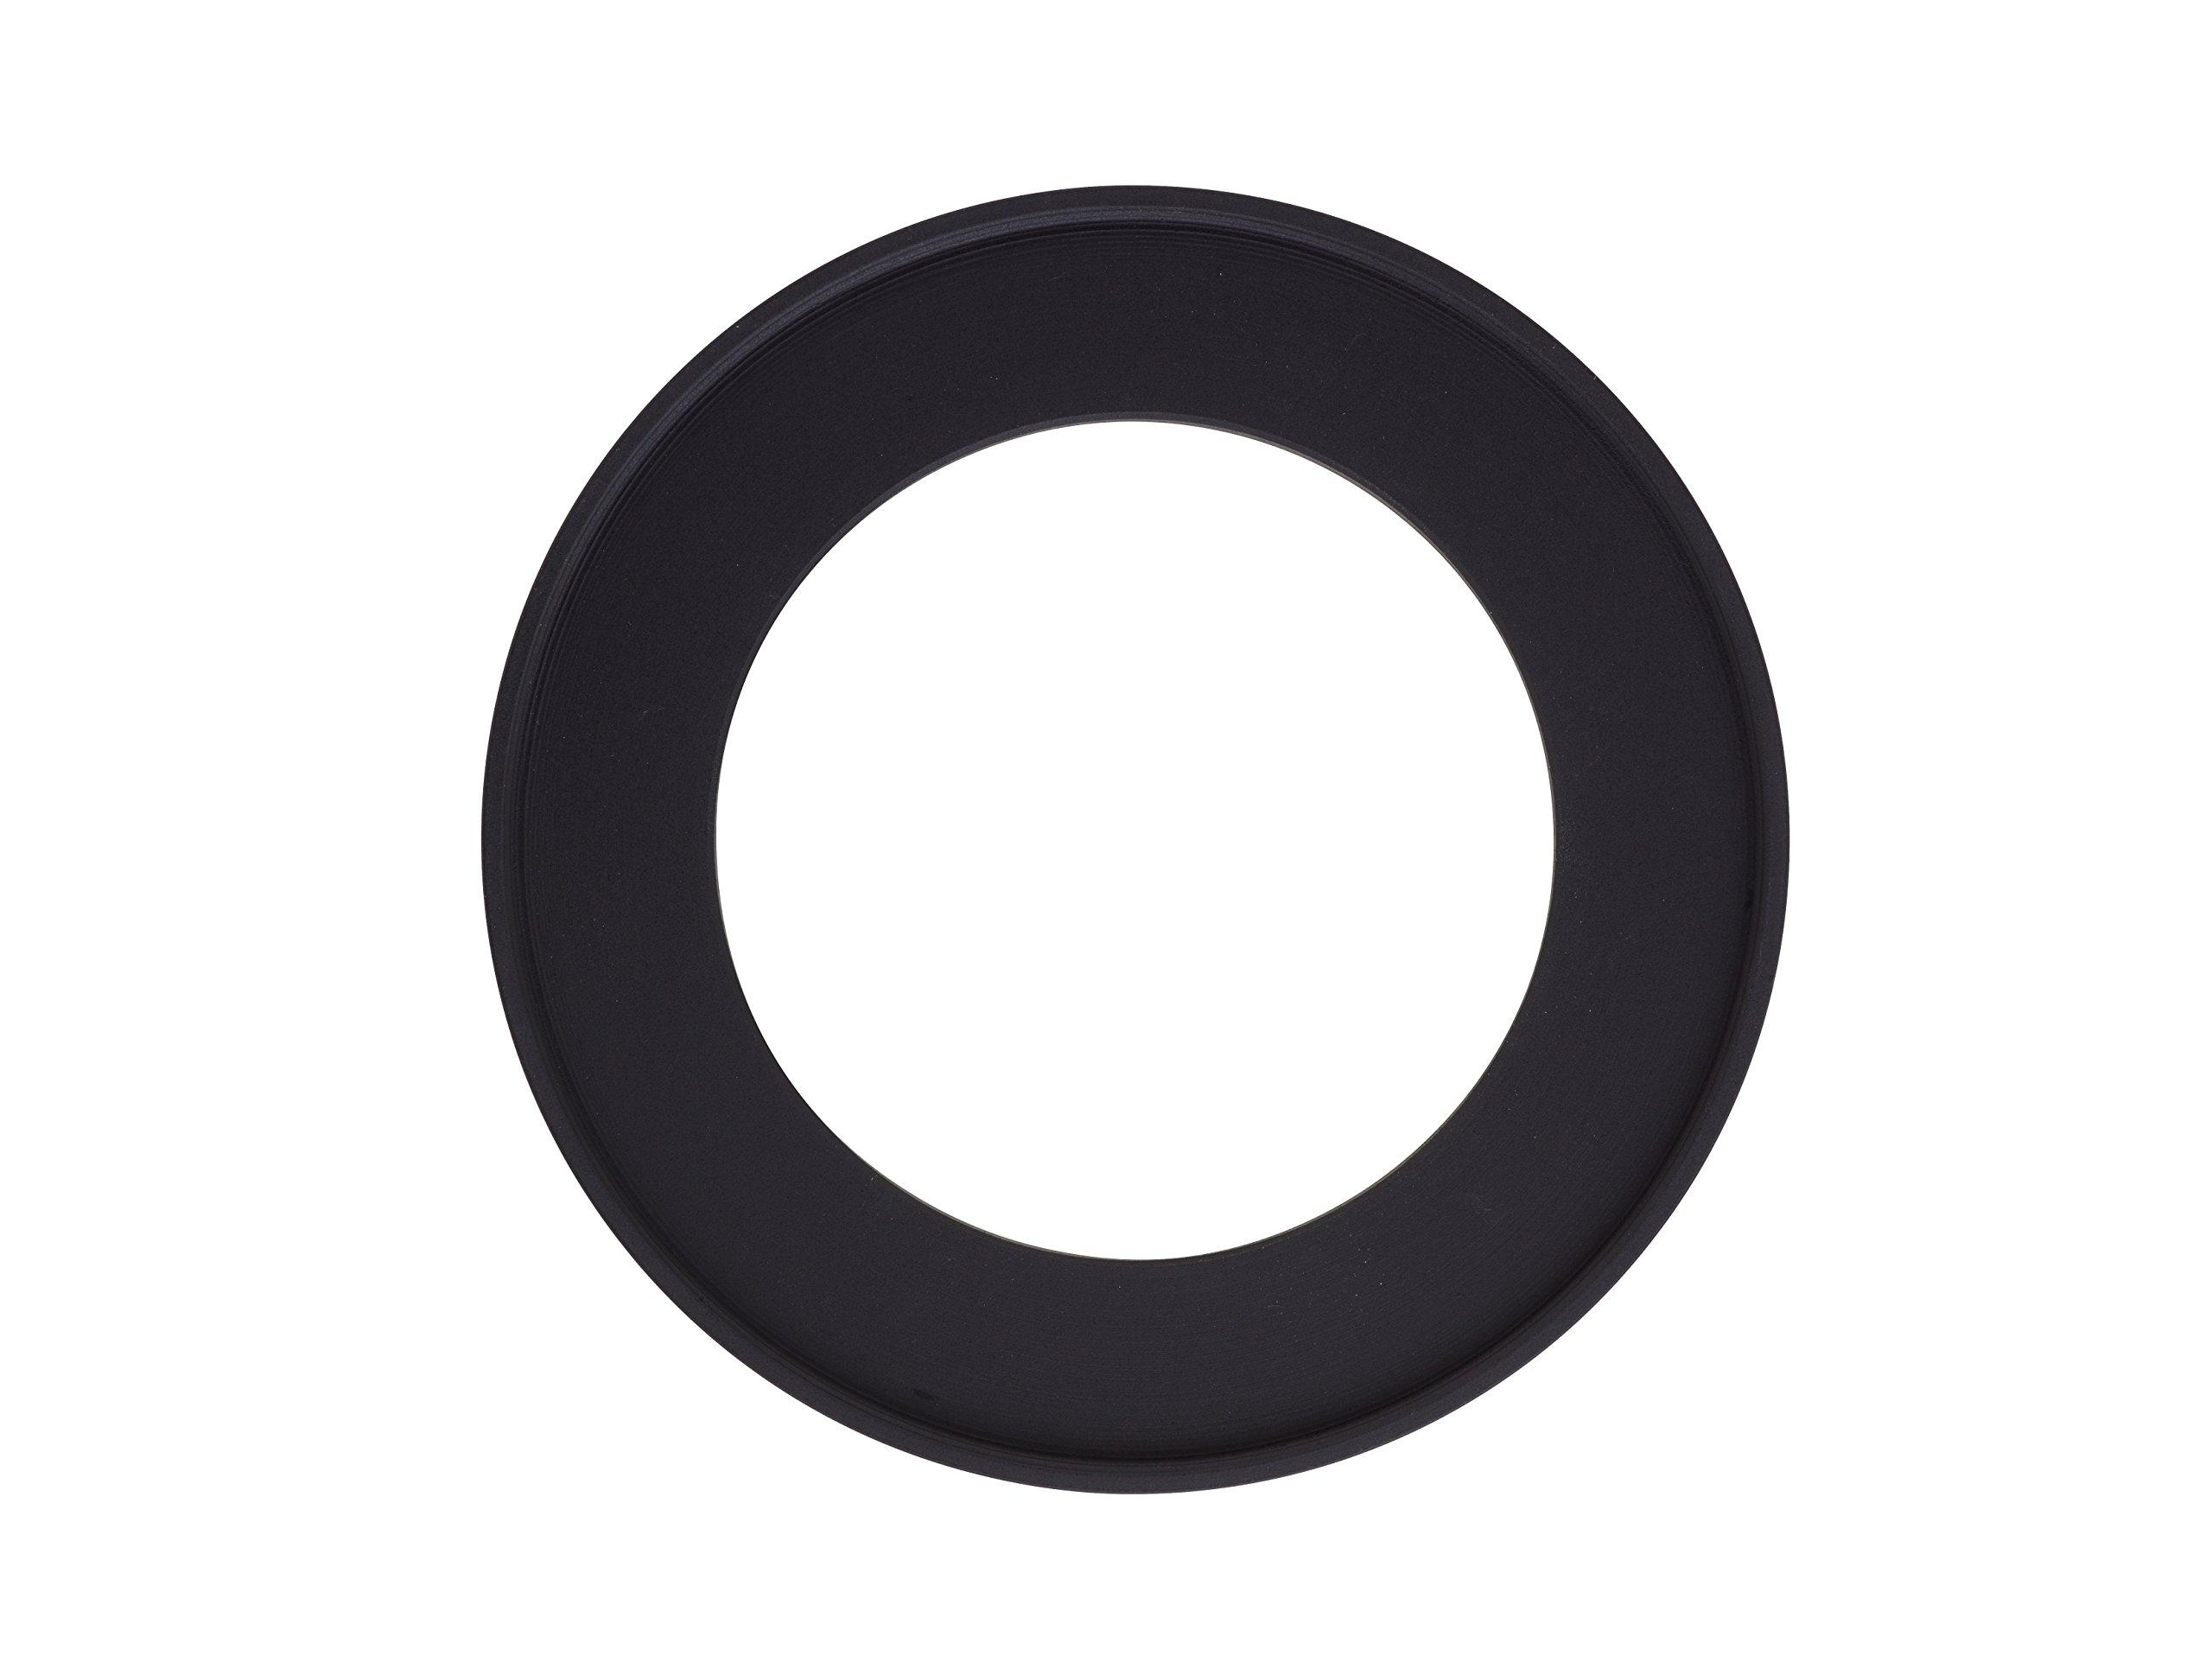 Heliopan 408 Adapter 77mm to 82mm Step-Down Ring (700408) by Heliopan